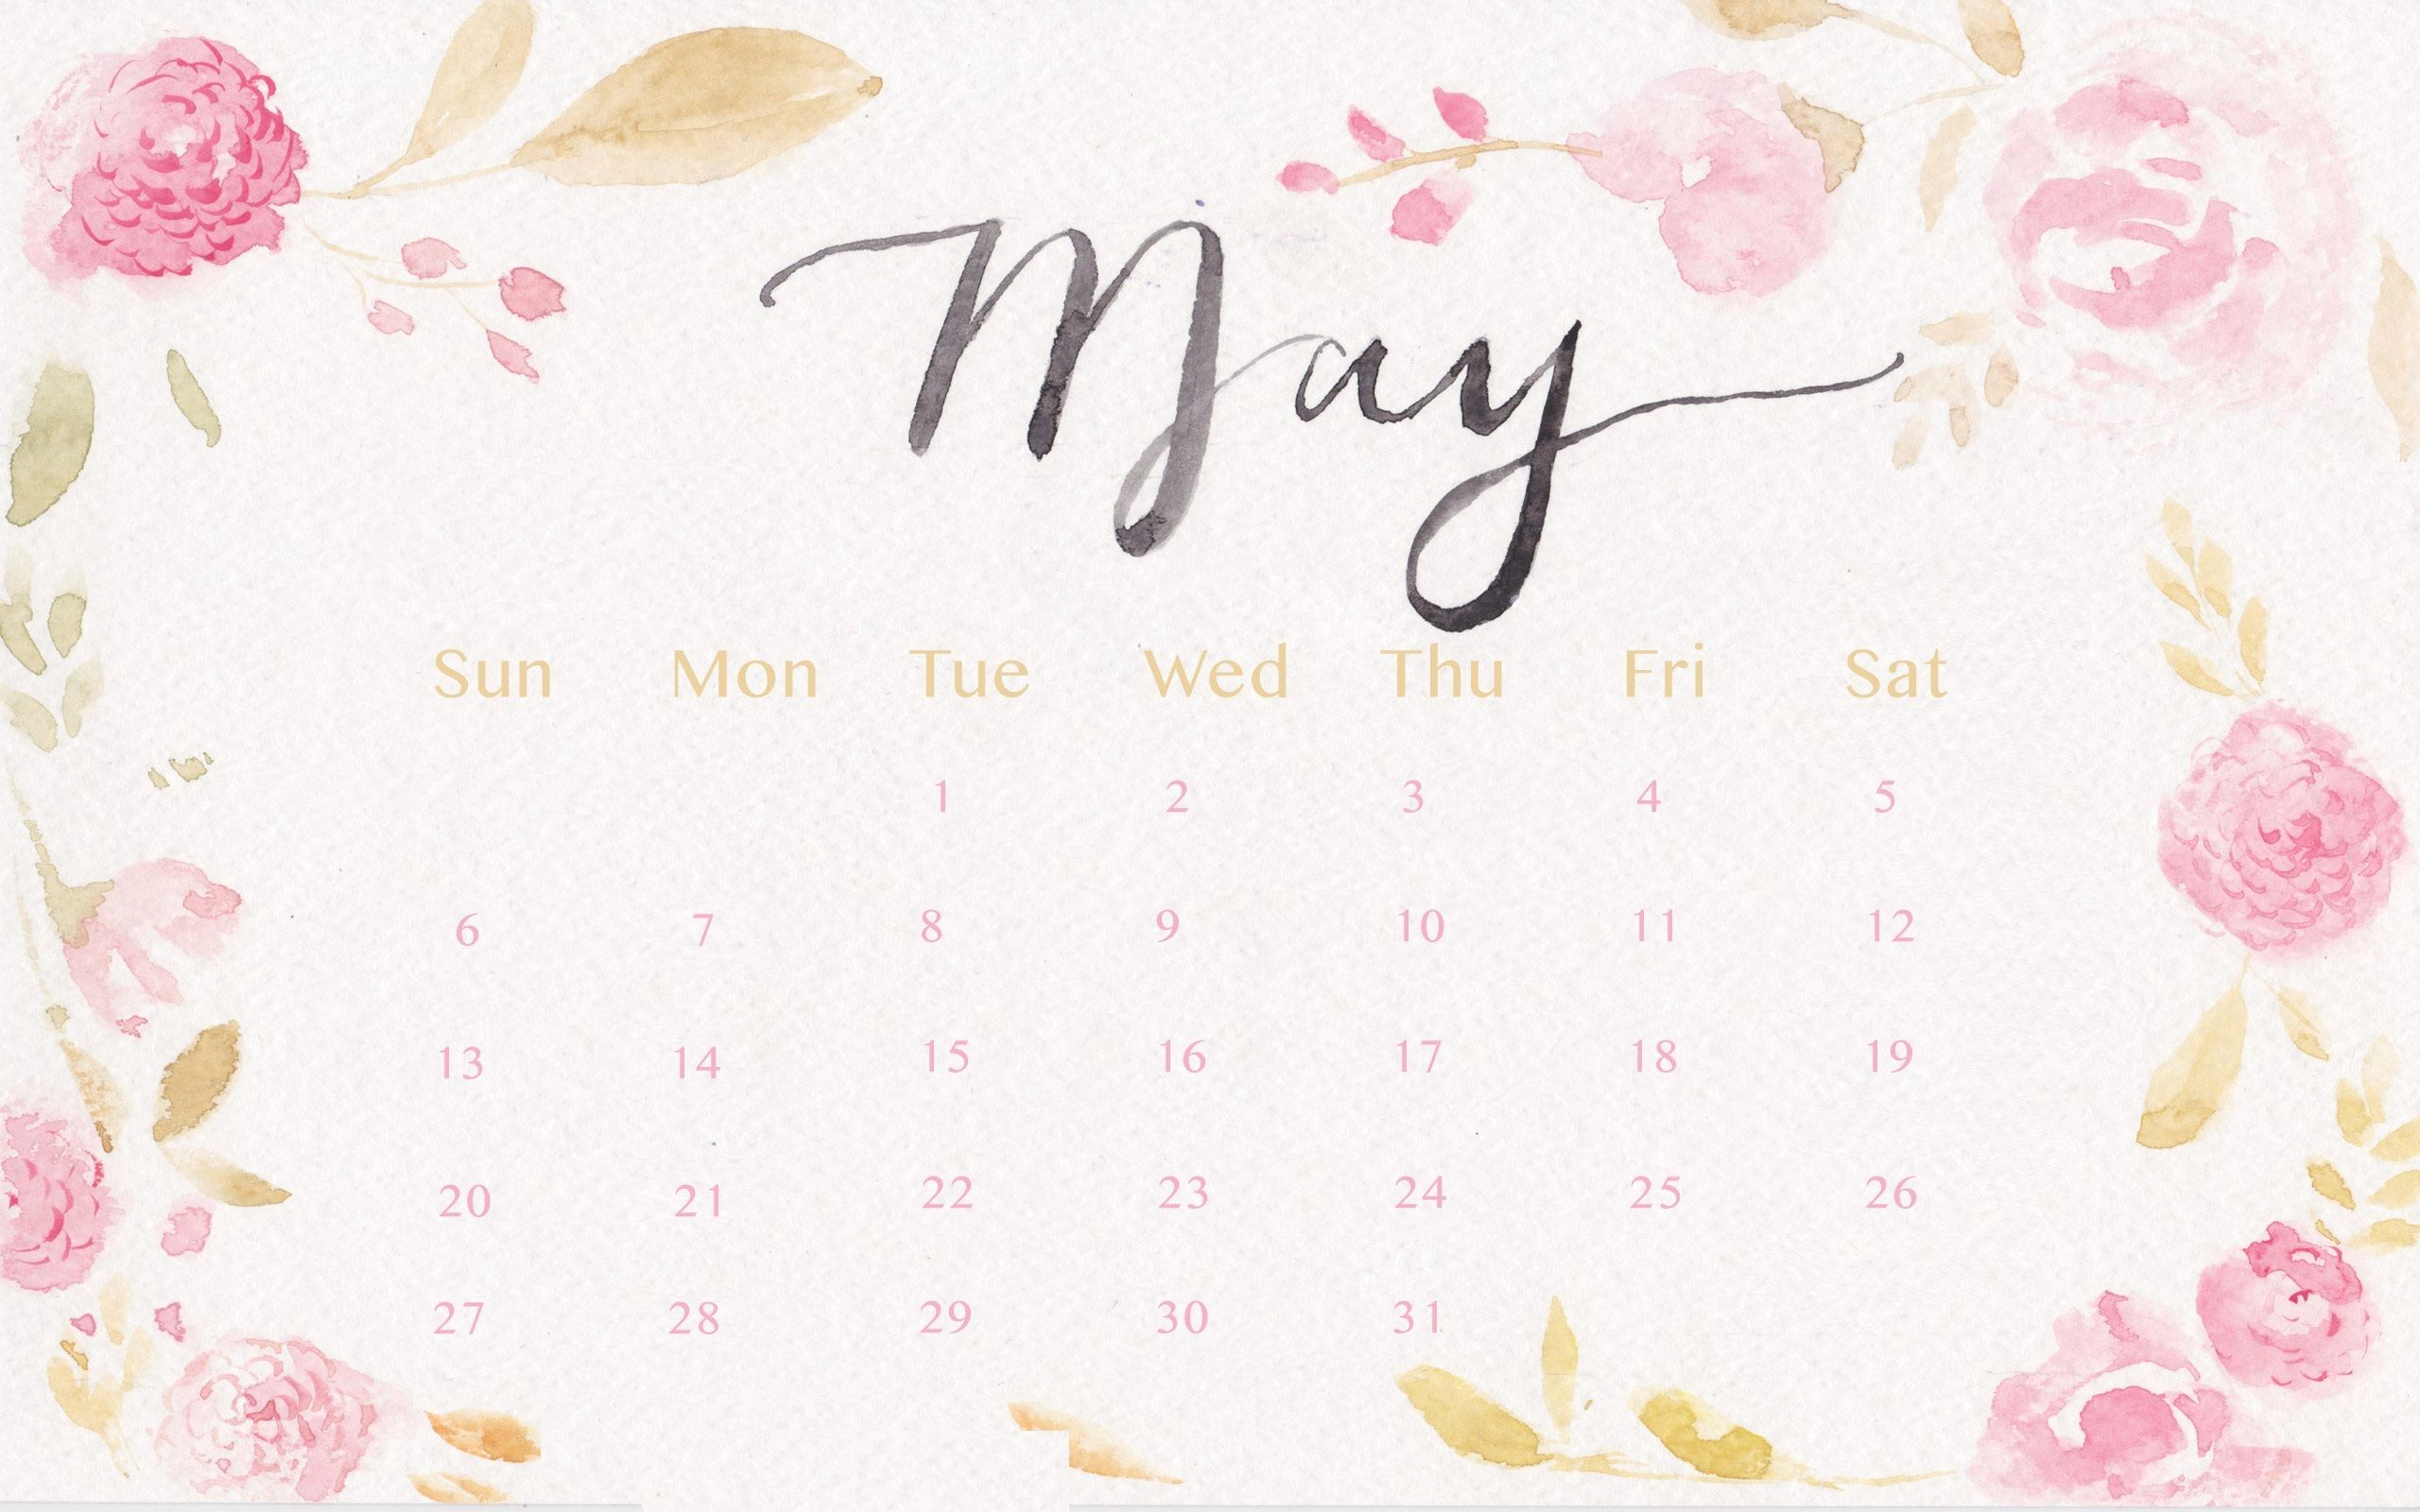 March Calendar Colors Más Recientemente Liberado Watercolor May Month 2018 Calendar Calendar 2018 Of March Calendar Colors Más Caliente Printable Music Worksheet Printable Music Paper Lovely Templates for